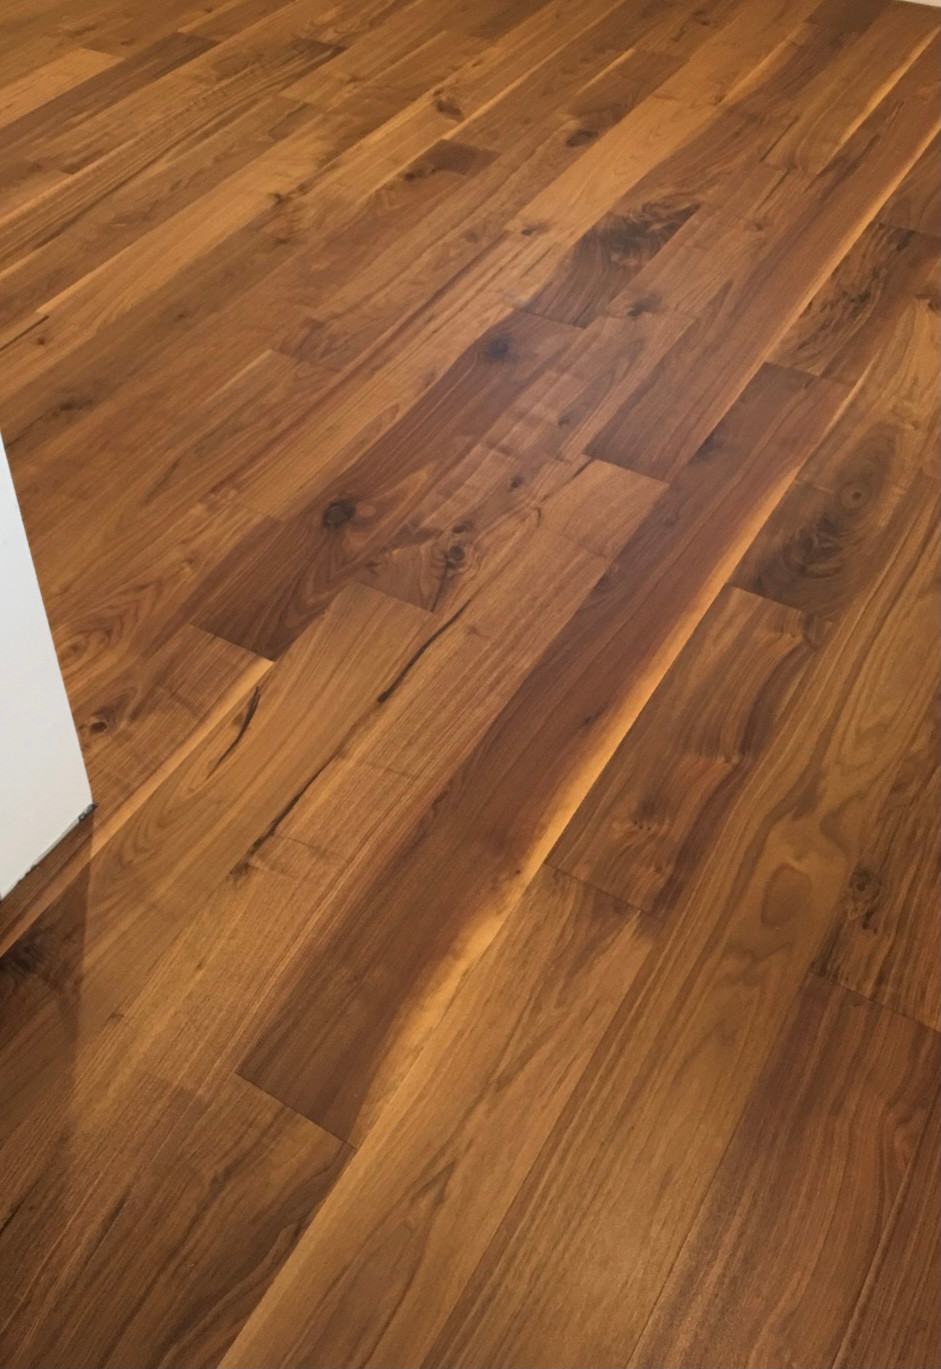 How to select proper species for hardwood flooring